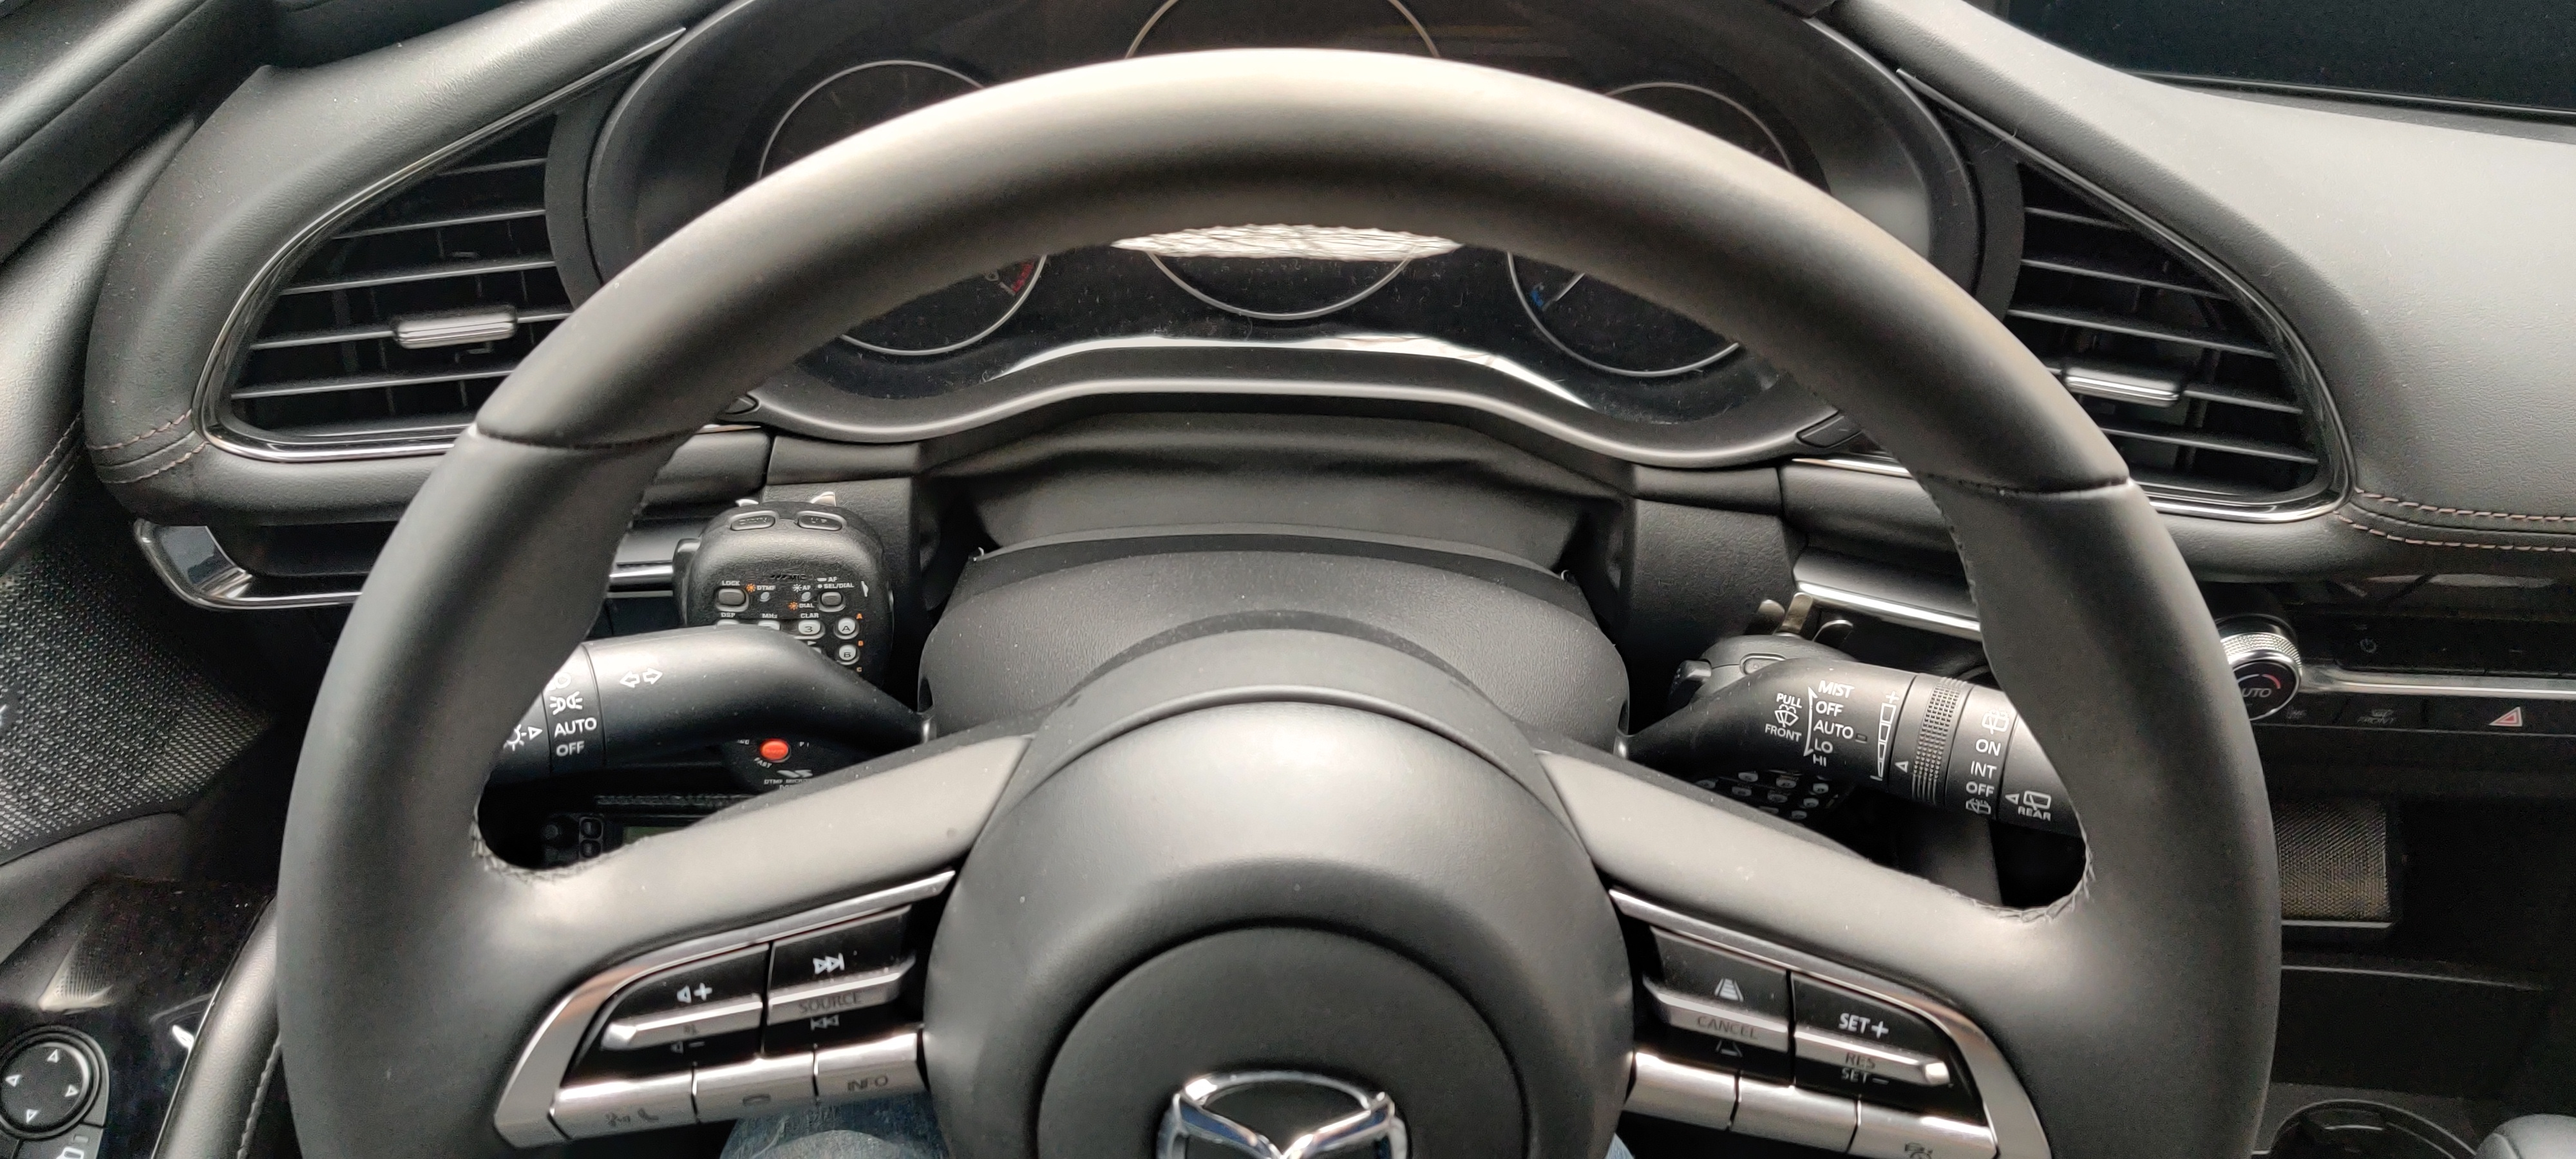 Overhead shot showing both mics nestled around the steering column.